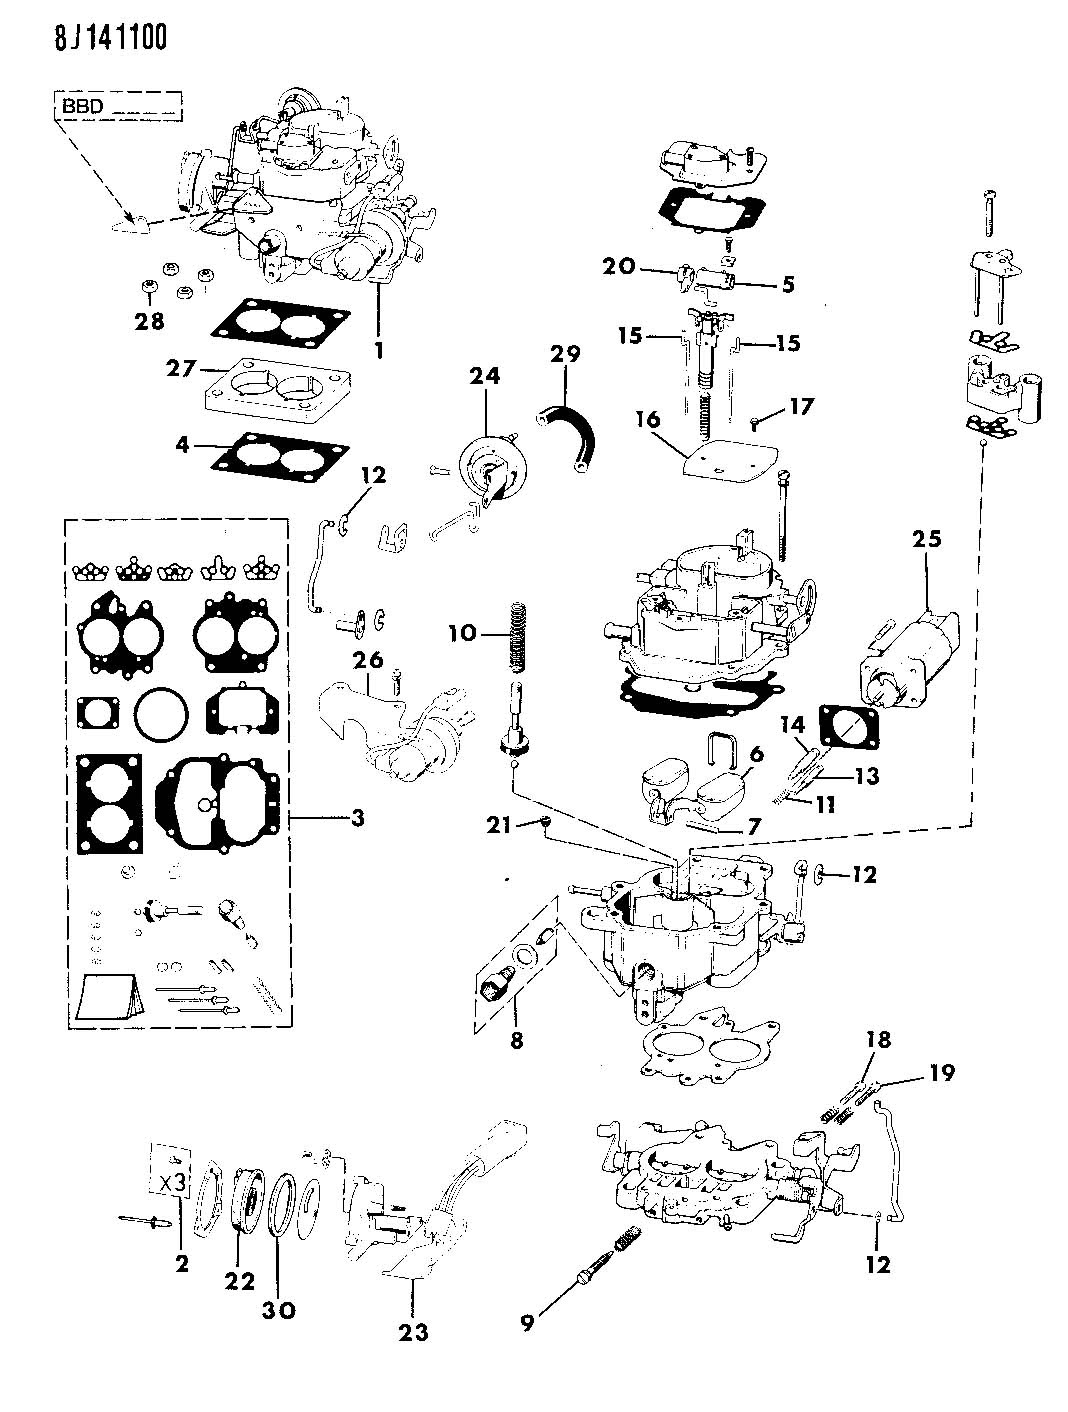 hight resolution of 1987 jeep wrangler engine diagram schematic diagram lincoln vacuum diagram wiring library